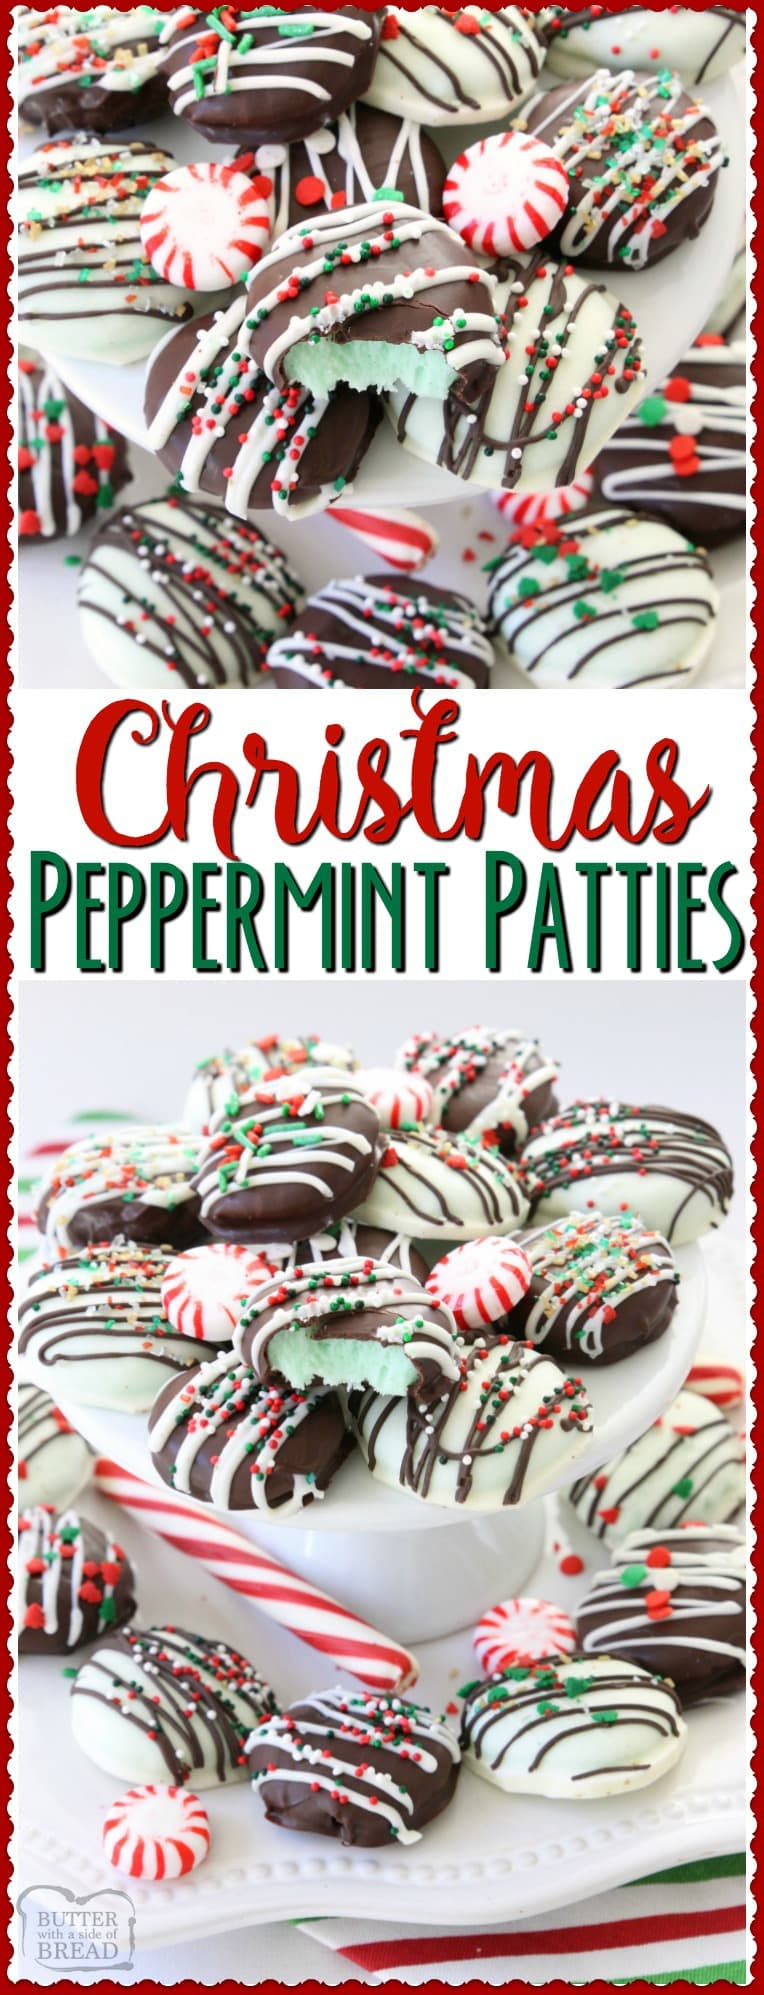 Christmas Peppermint Patties made easy with few ingredients! Perfect fun & festive dessert for holiday parties & gifts. They taste so much better homemade! Easy #peppermint #candy #chocolate #Christmas #holiday #recipe from Butter With A Side of Bread